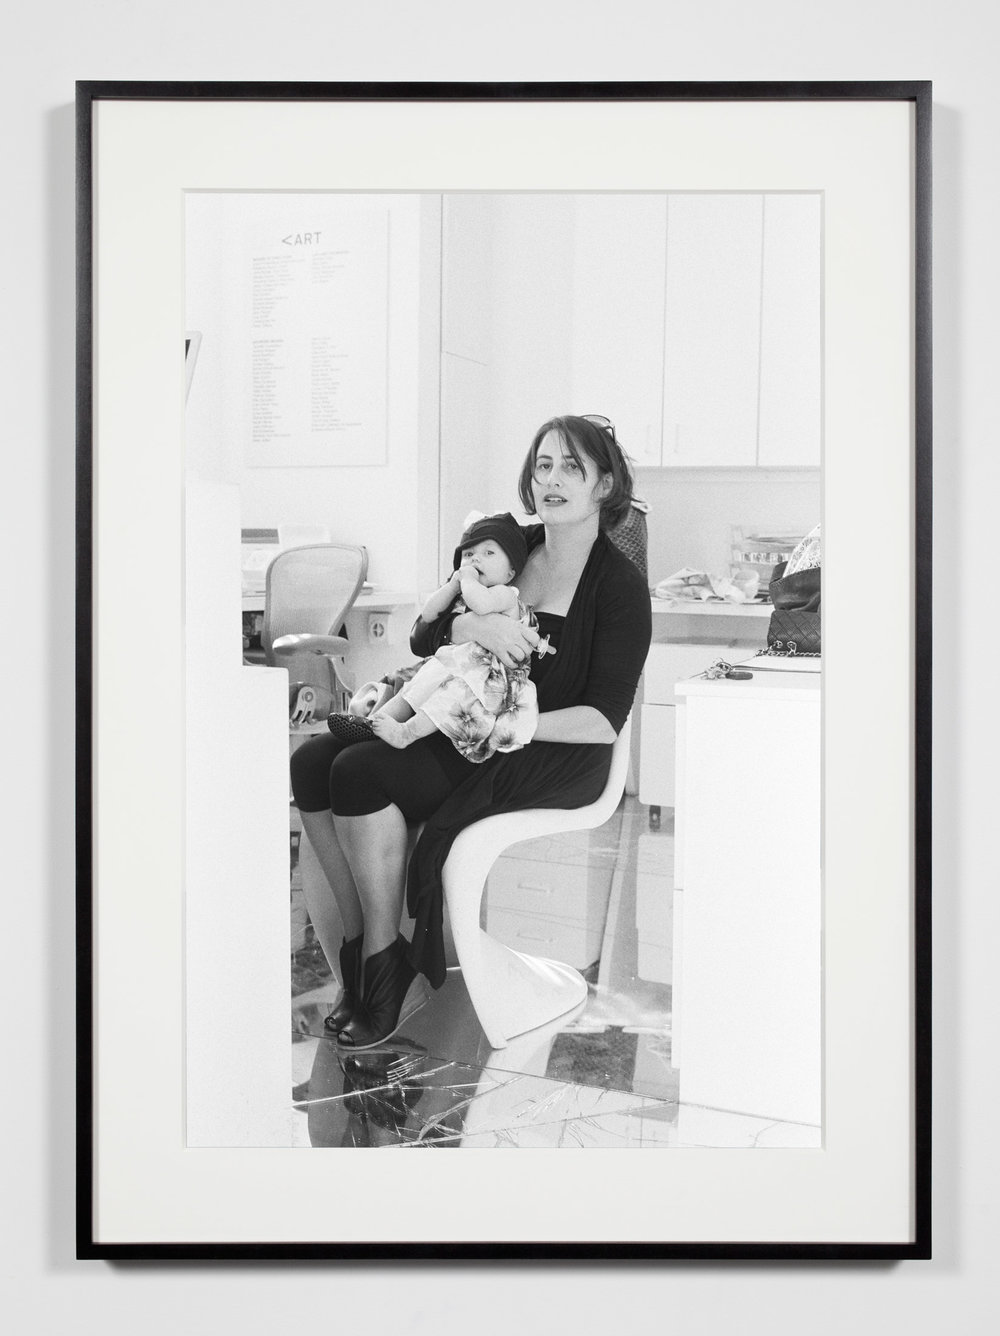 Nonprofit Director/Curator with Daughter, Los Angeles, California, March 17, 2009   2011  Epson Ultrachrome K3 archival ink jet print on Hahnemühle Photo Rag paper  36 3/8 x 26 3/8 inches   Industrial Portraits, 2008–    A Diagram of Forces, 2011